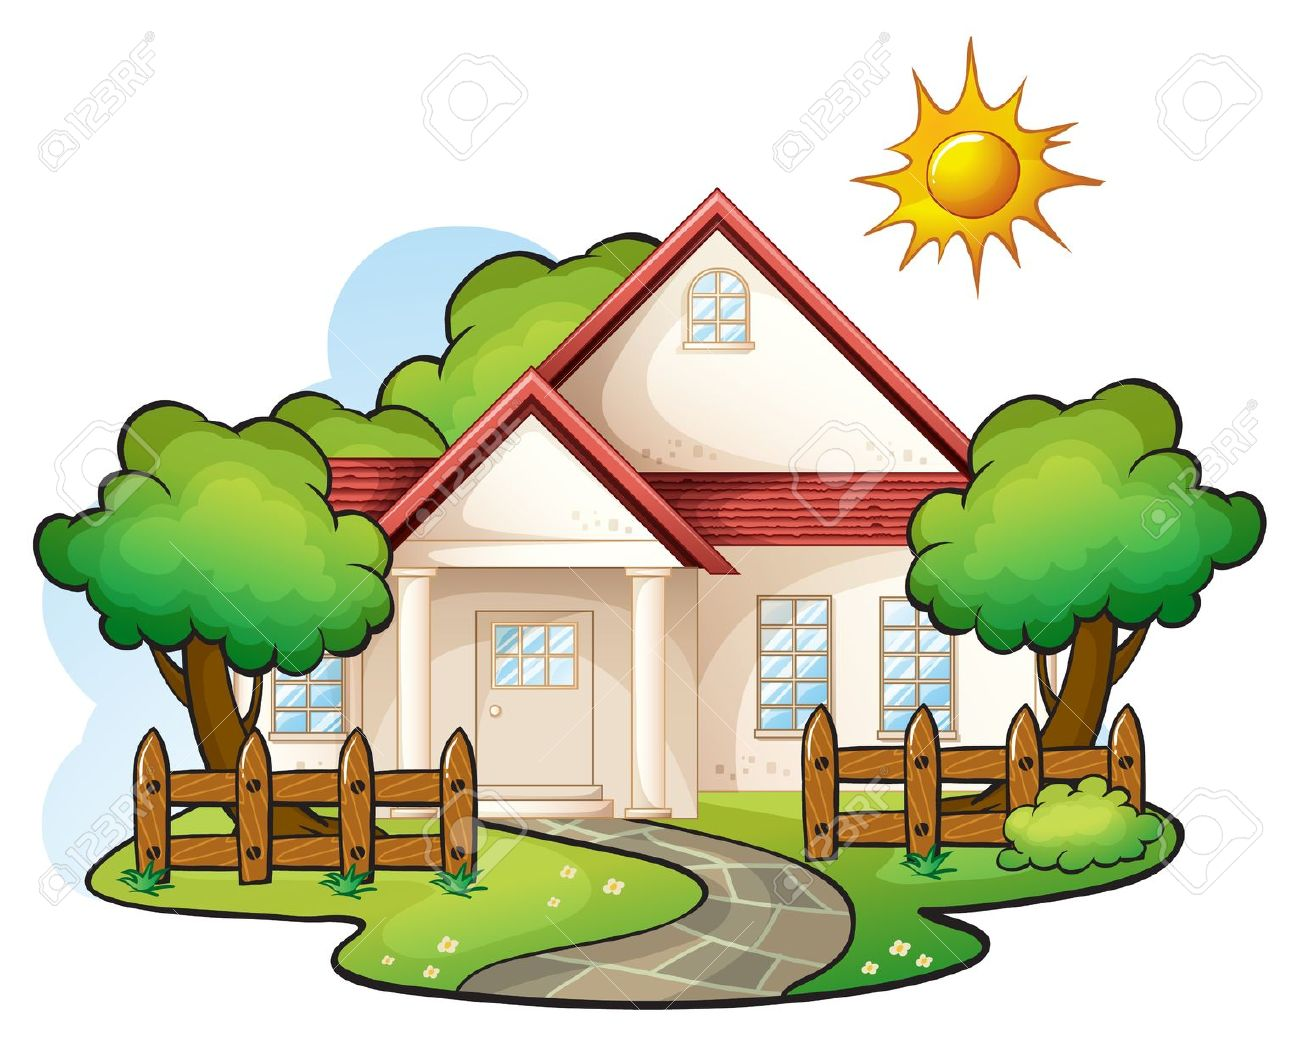 clipart transparent download Yard clipart cute cottage. Collection of free download